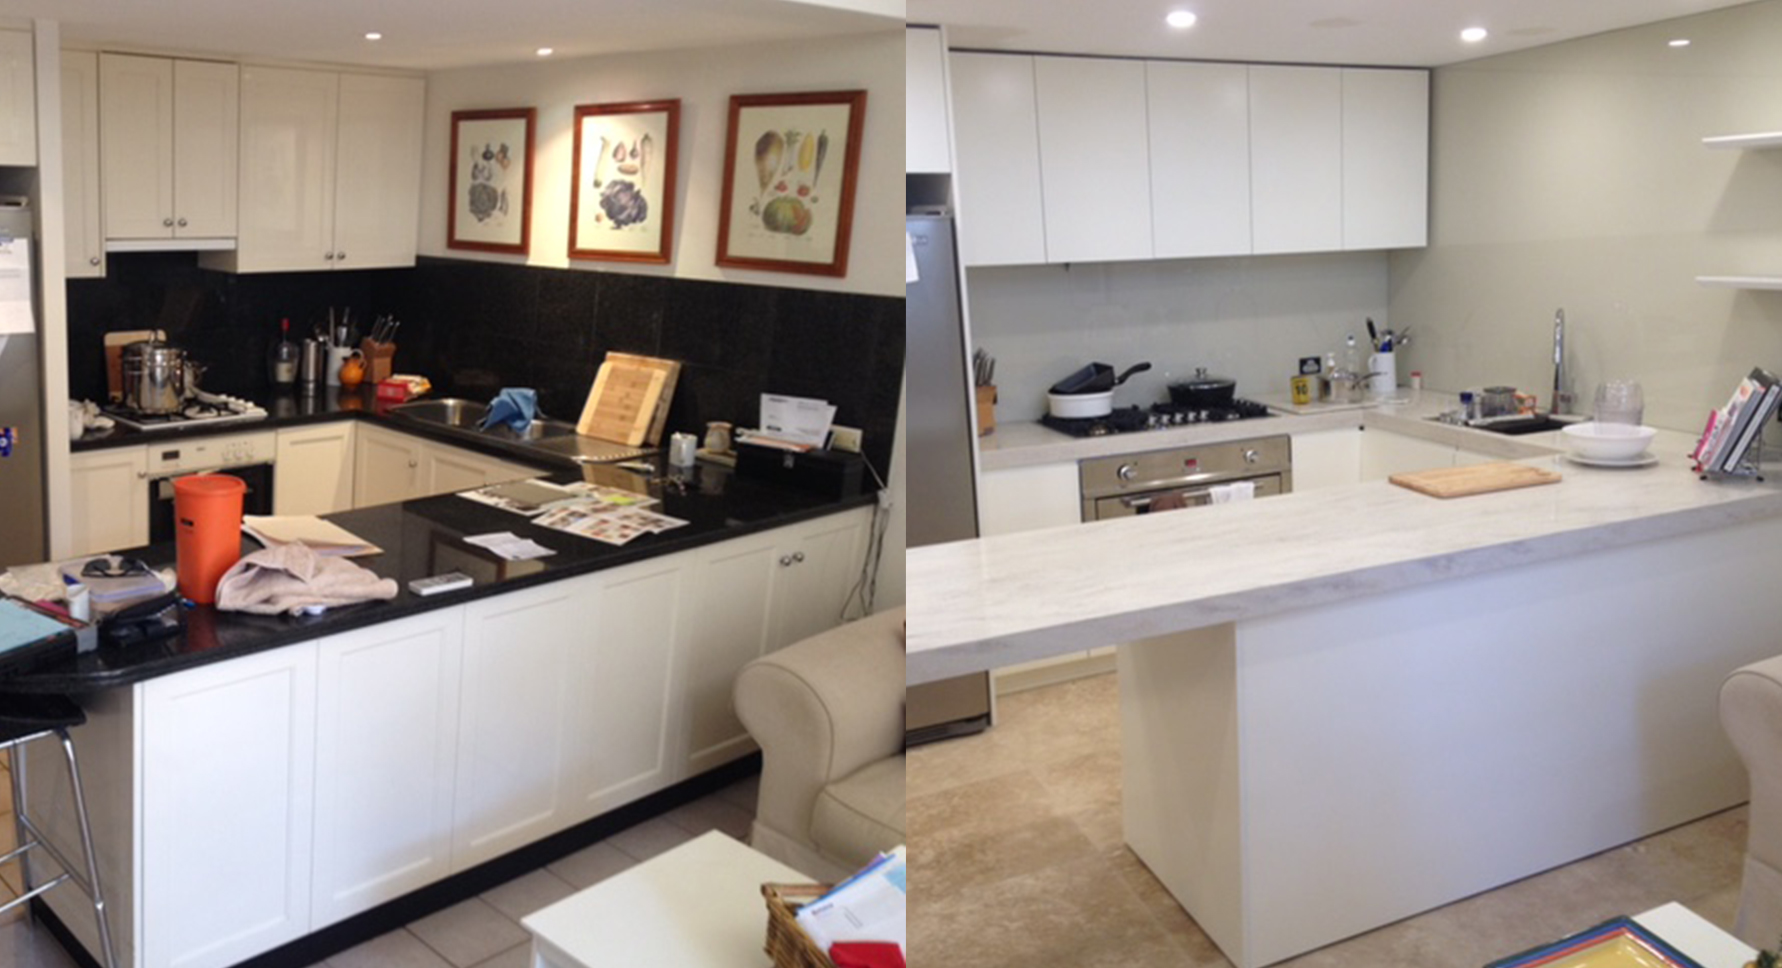 kitchen-before-after_2